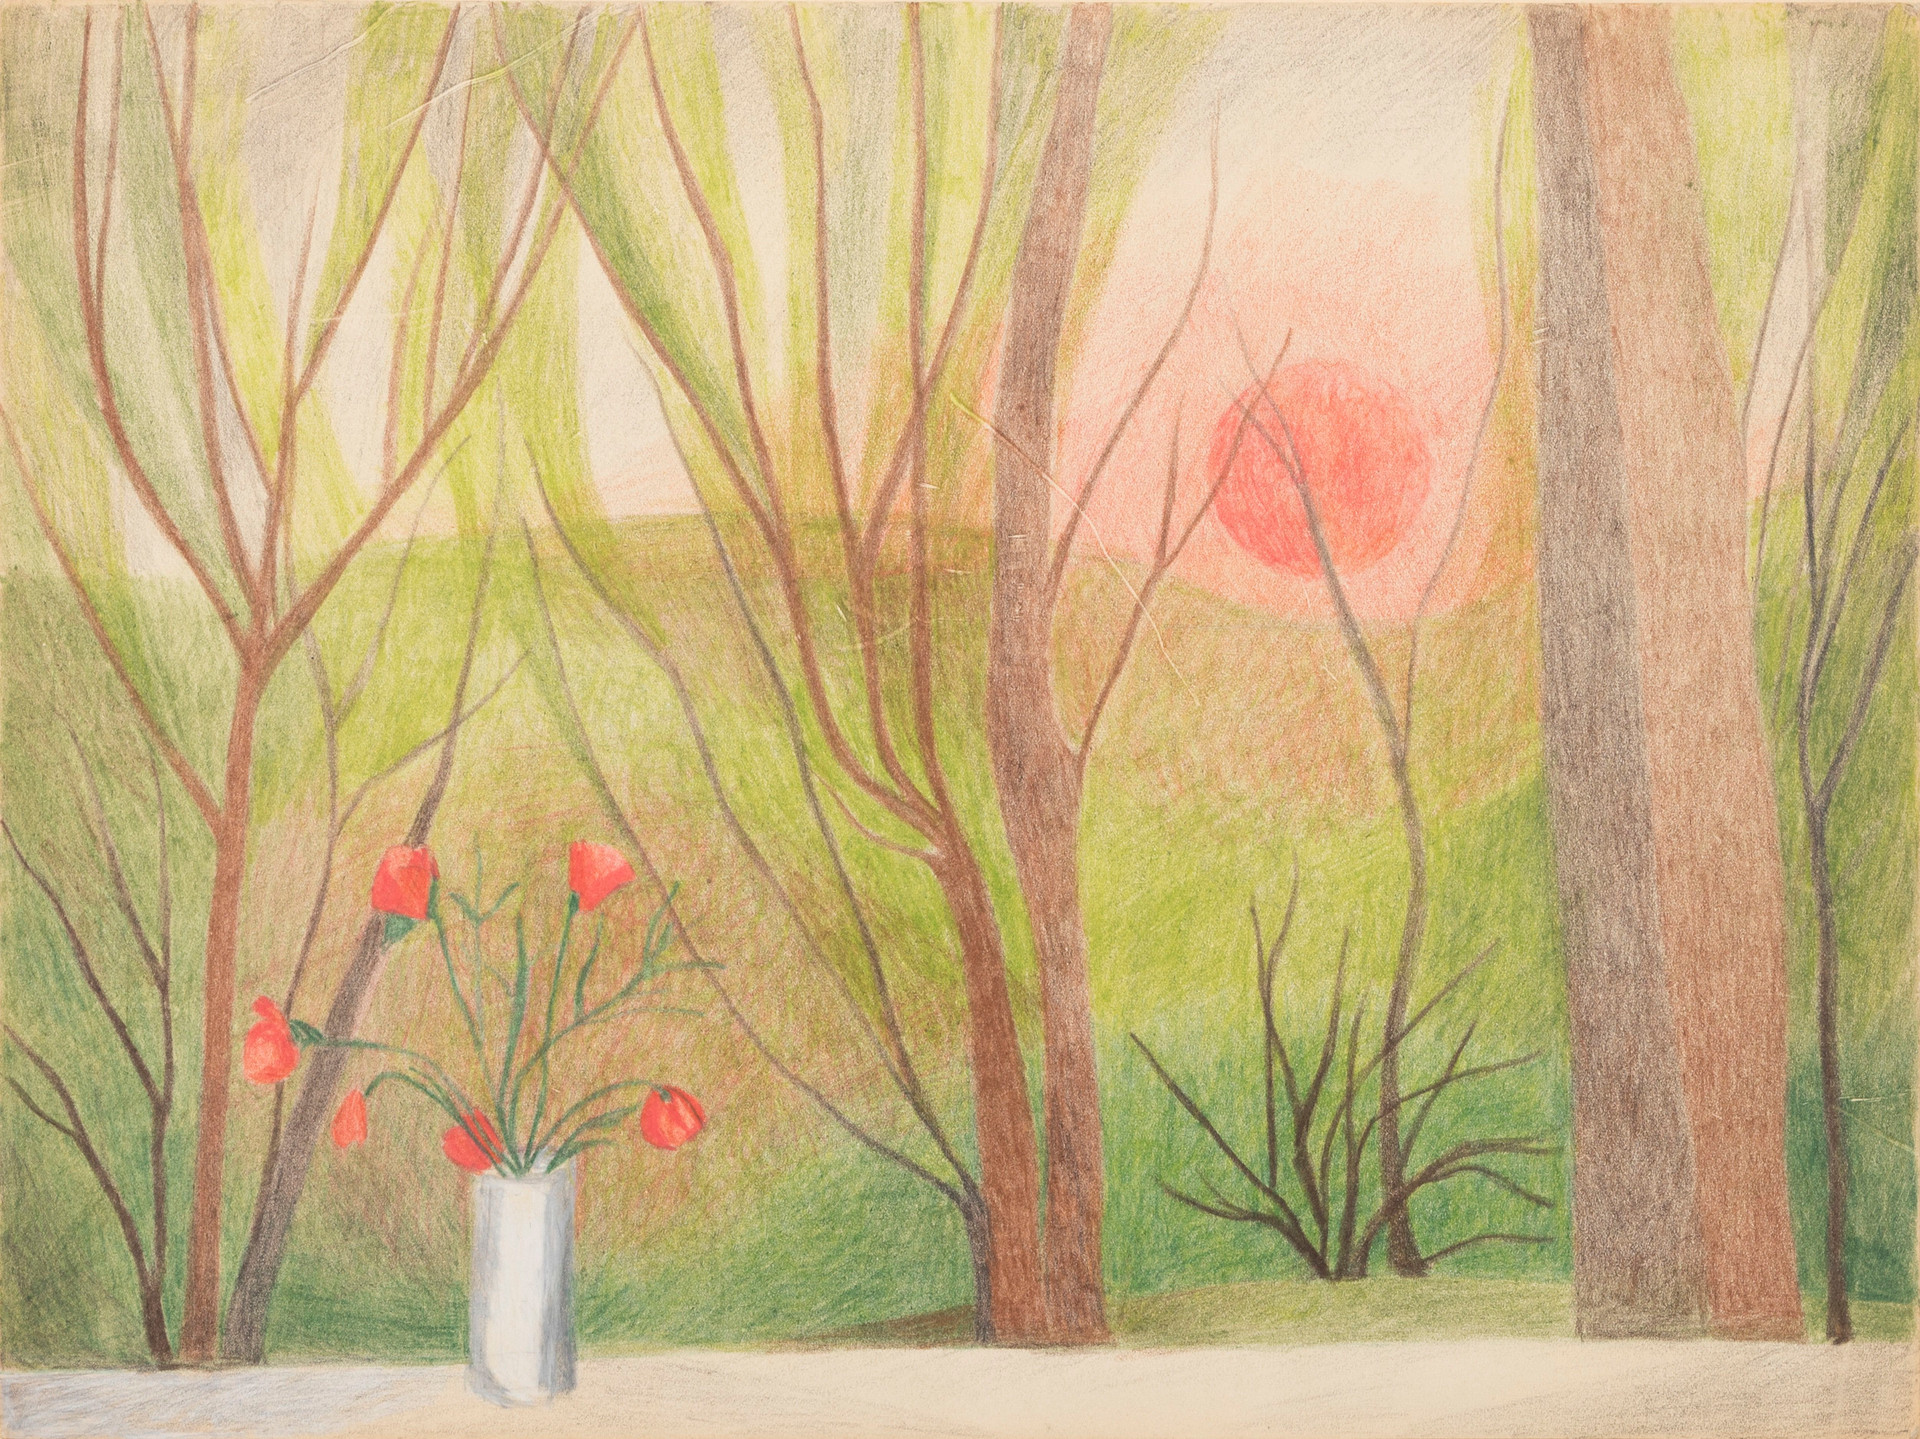 Untitled - view of sunrise/sunset though trees; a vase of red flowers in the foreground